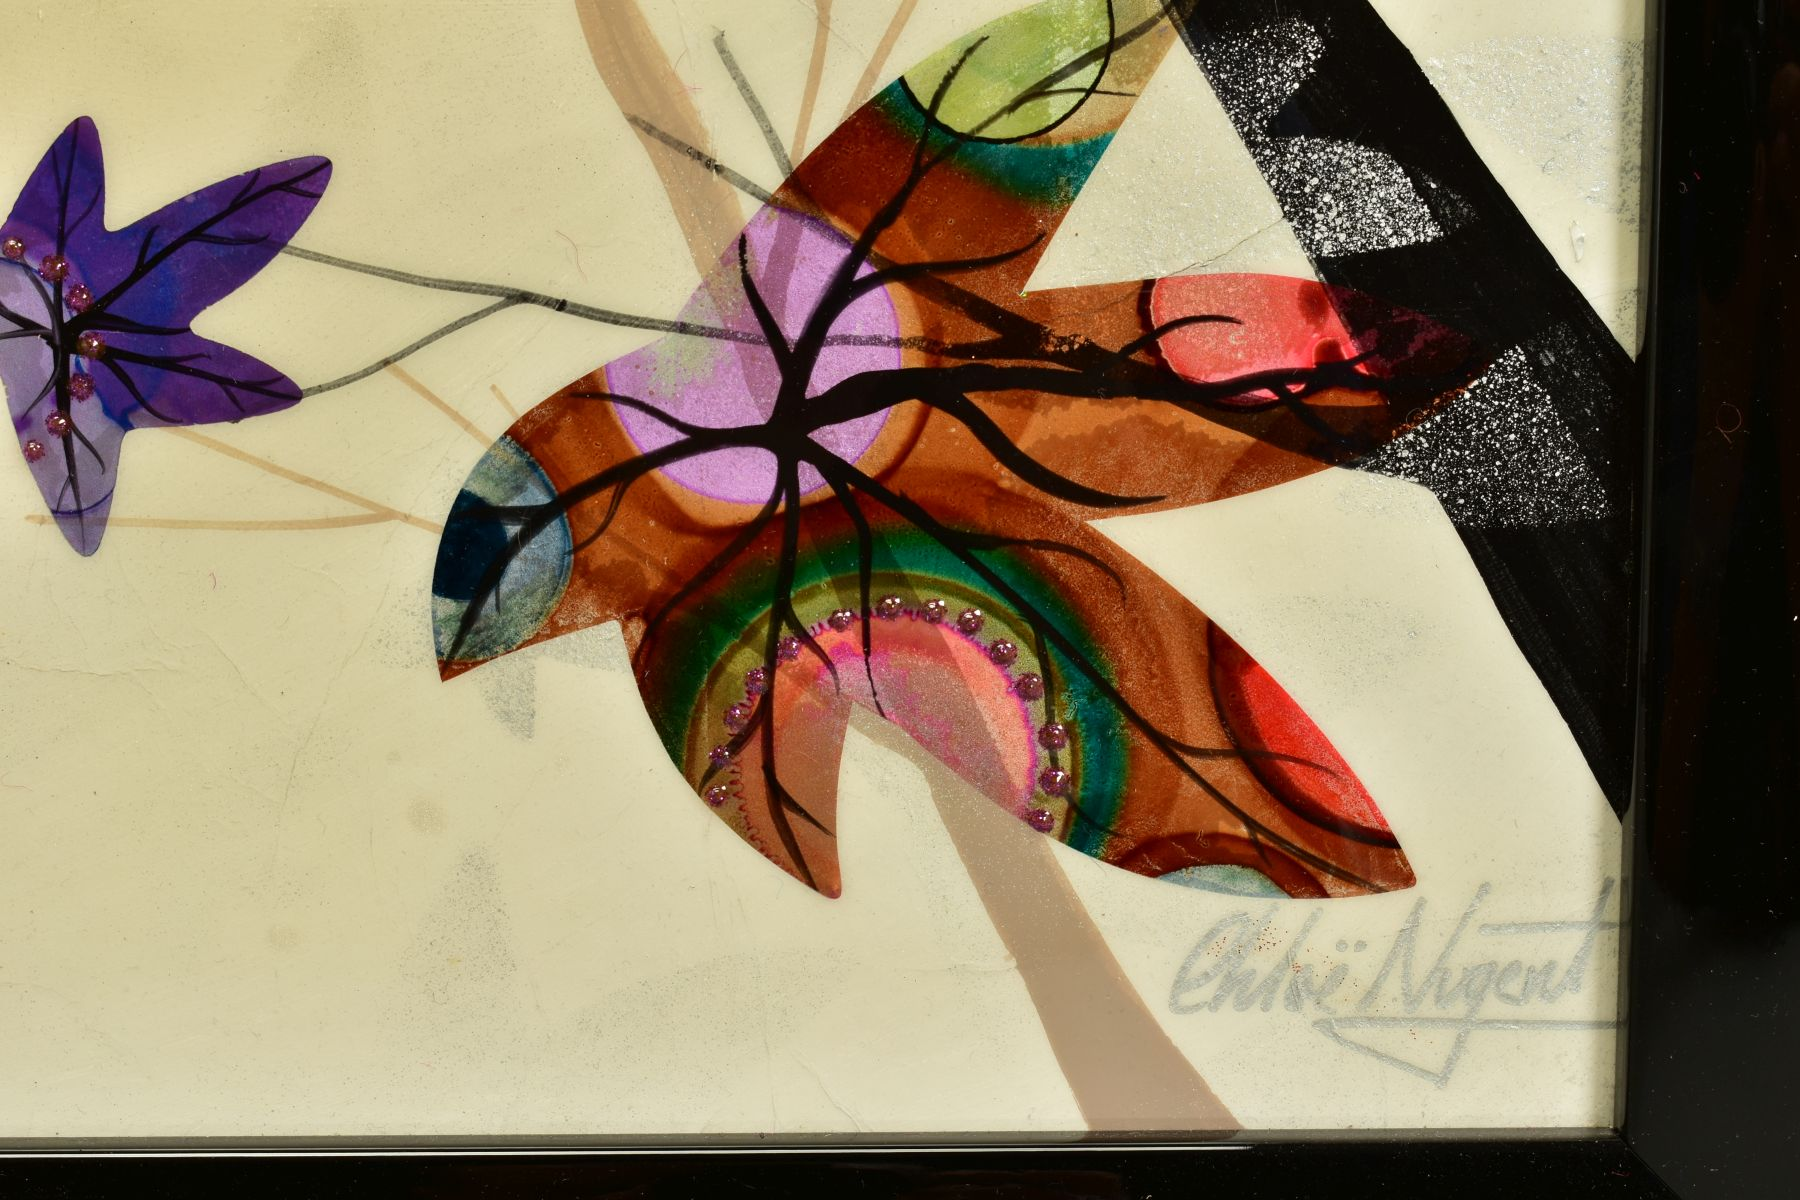 CHLOE NUGENT (BRITISH CONTEMPORARY), 'Woodland Jewels VI', colourful leaves falling from trees, - Image 5 of 6